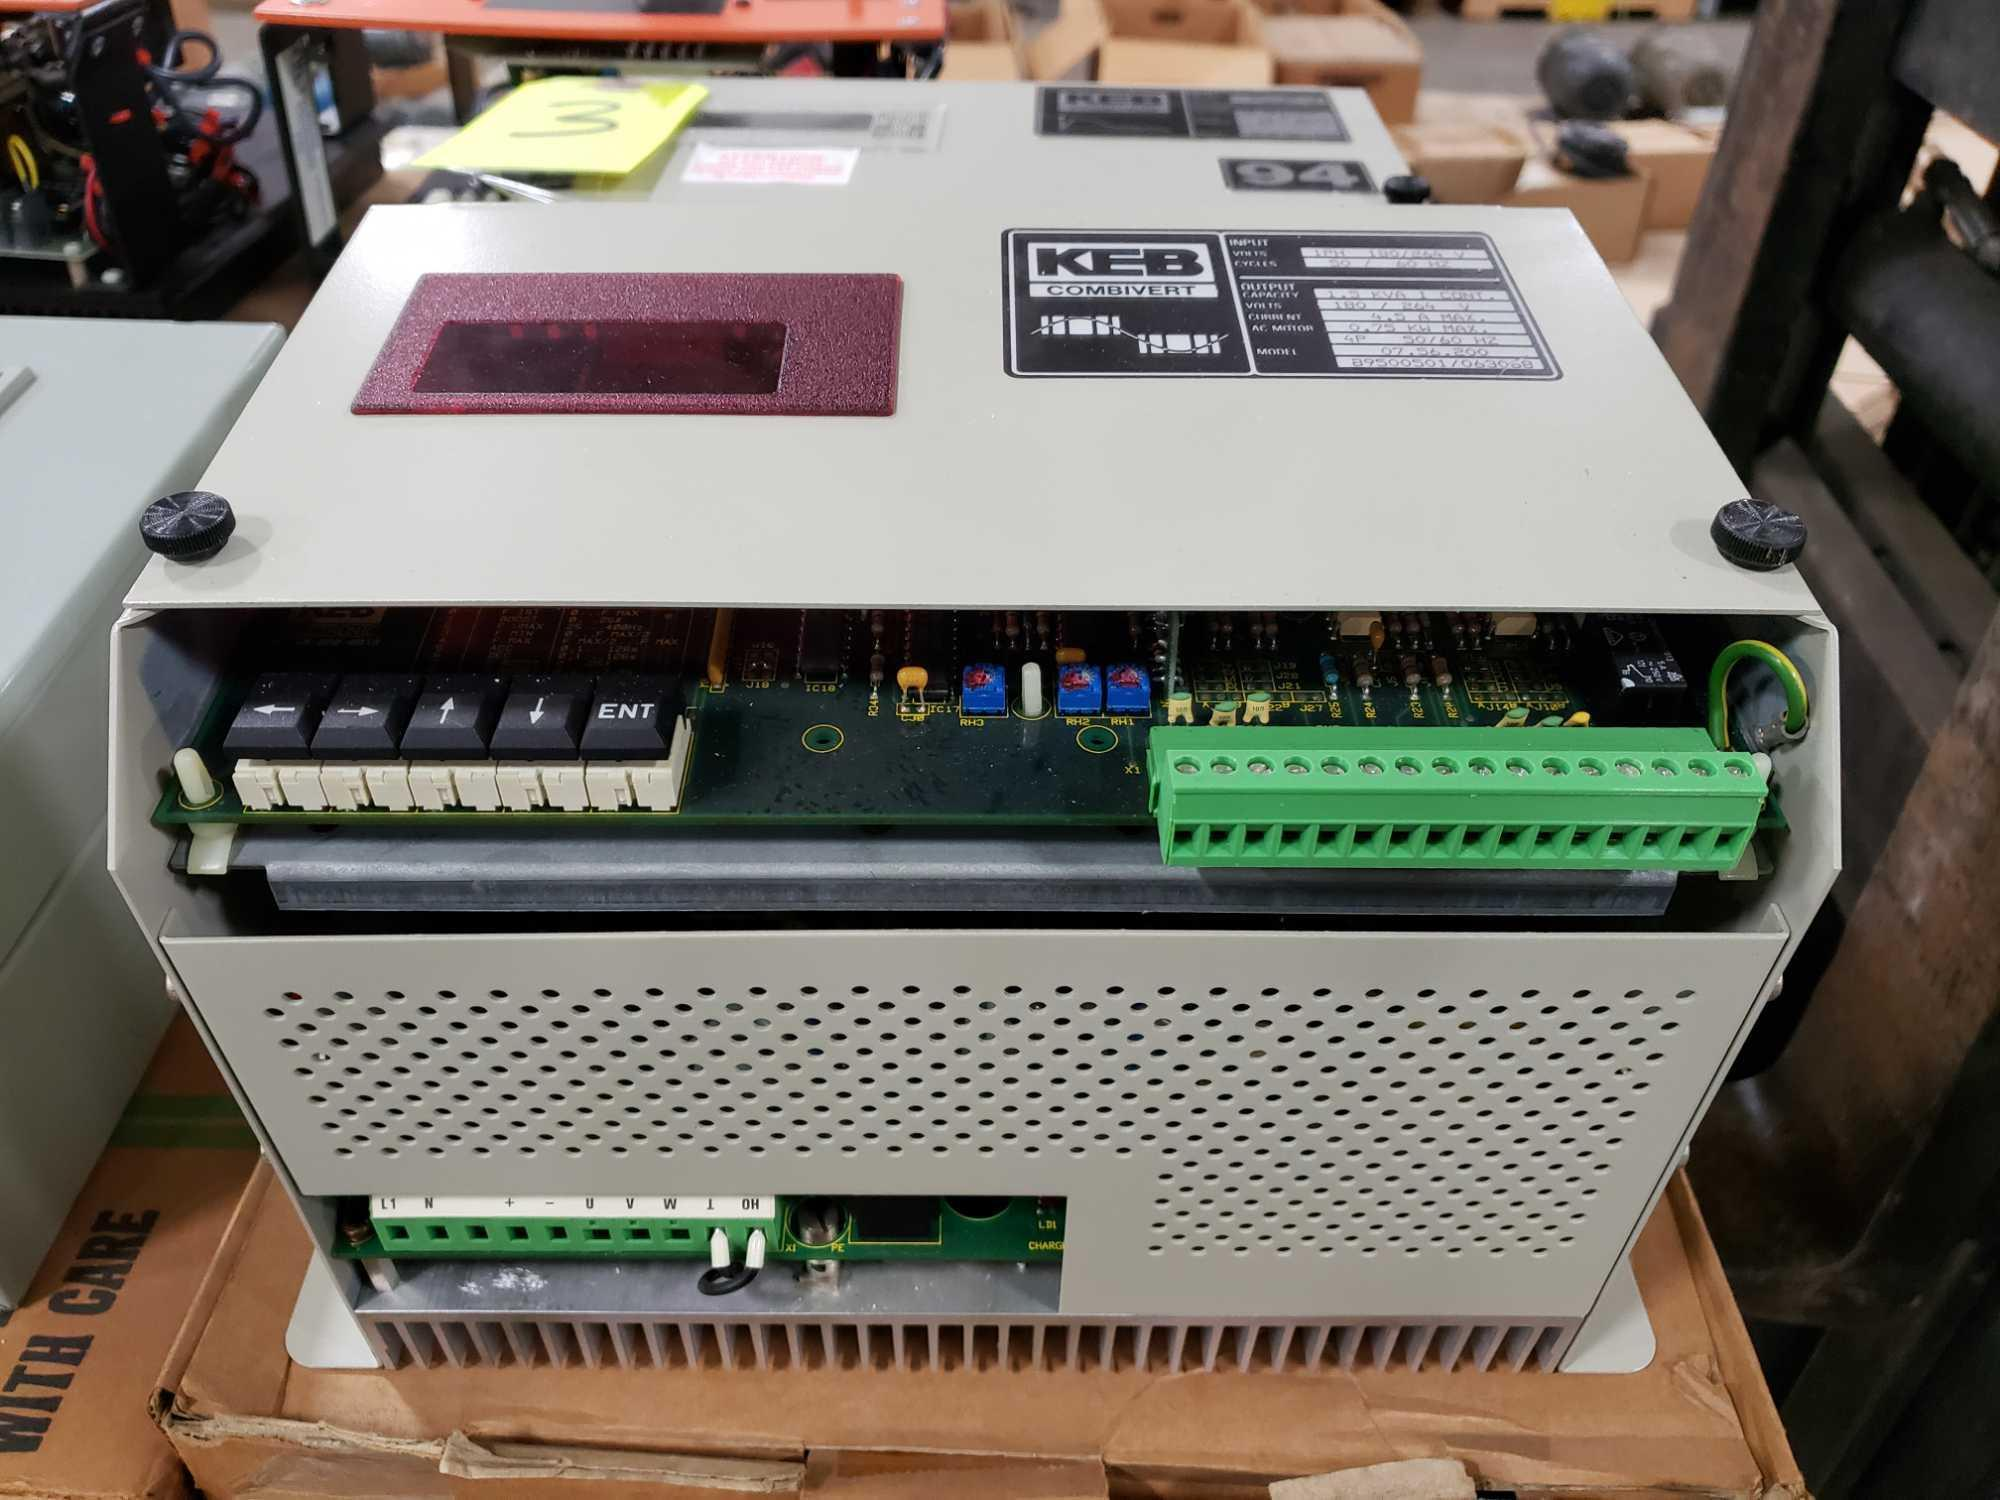 KEB Combivert drive. 180-264v input, 180-264v AC output. New in box. - Image 3 of 3